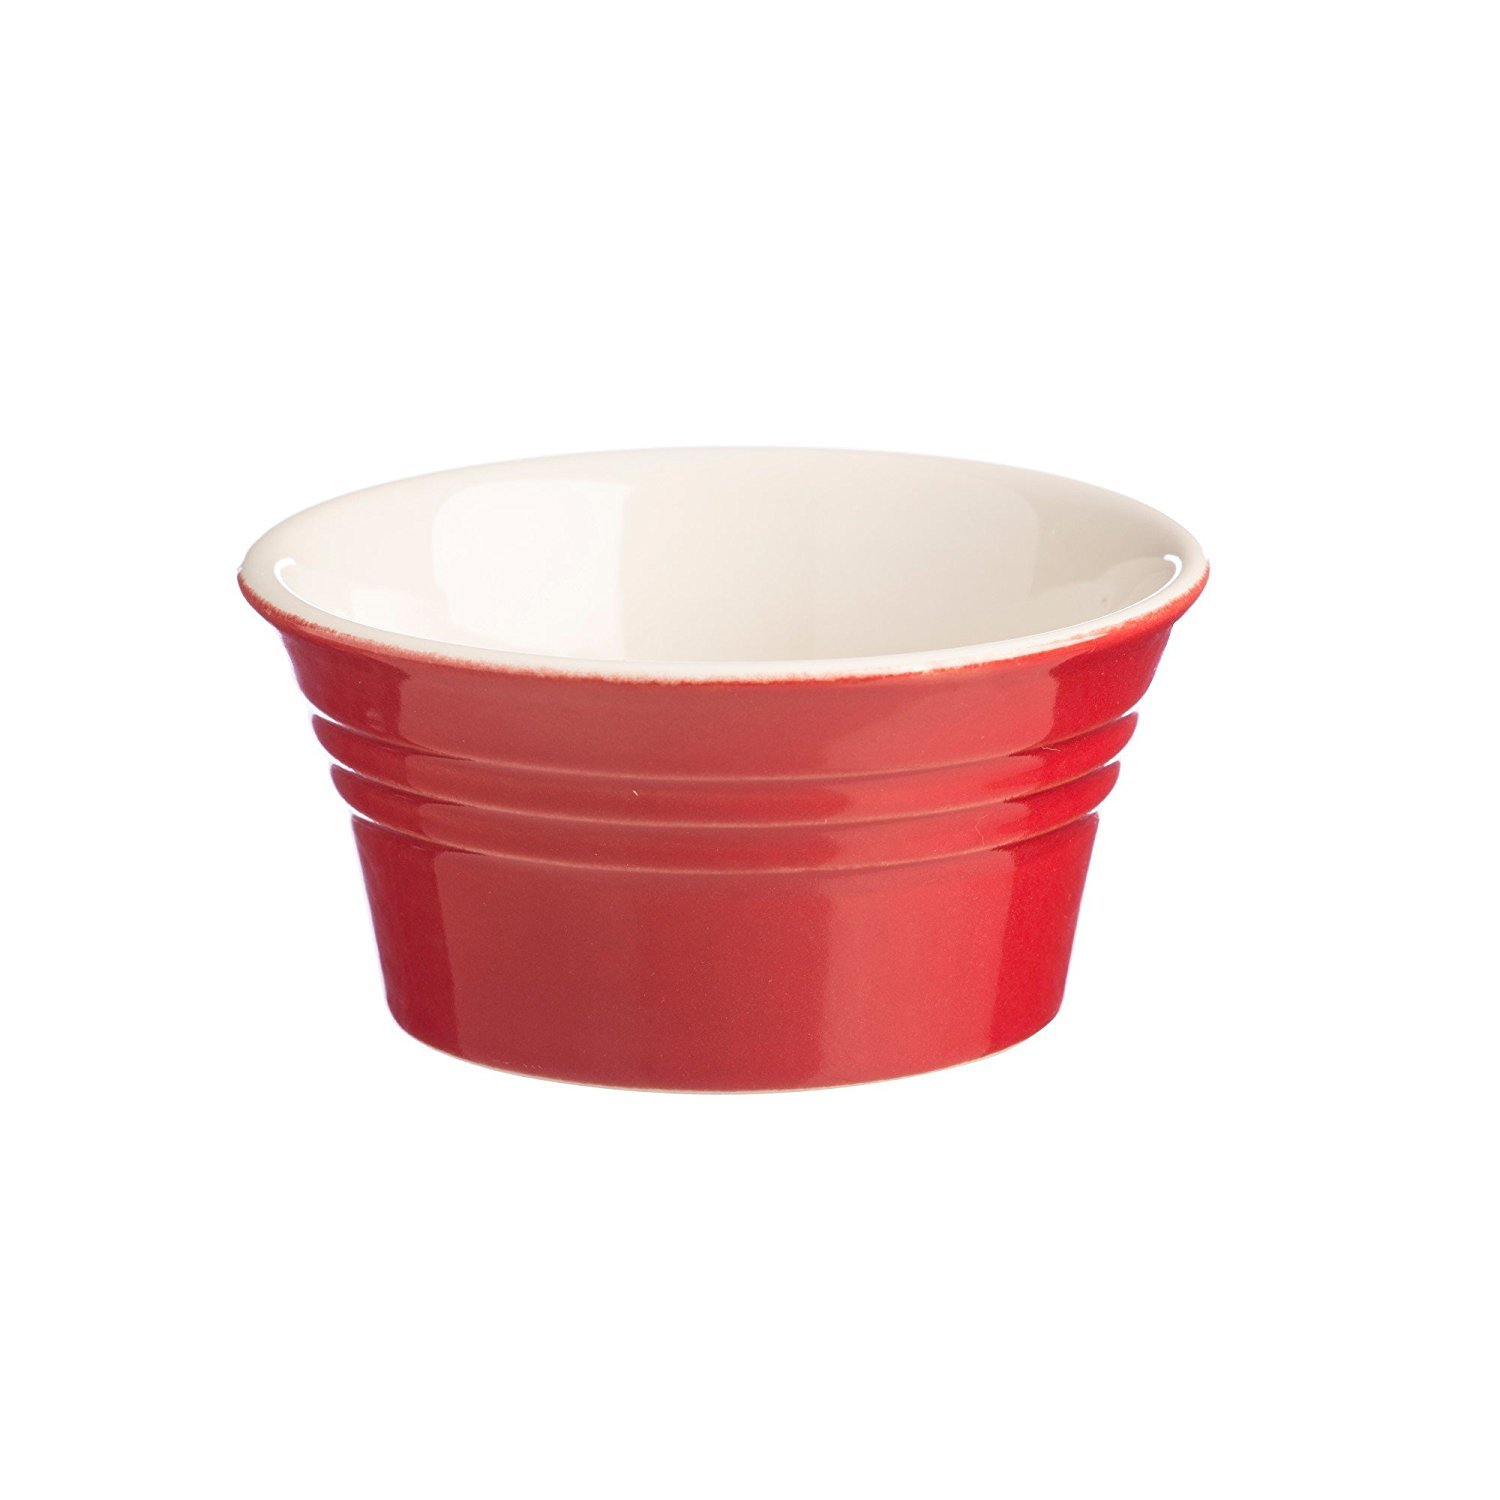 Mason Cash Classic Kitchen Ramekin, Durable Stoneware Goes from Oven to Table, 6-Fluid Ounce Capacity Ideal for Souffles, Dips and Personally Portioned Dishes, Dishwasher and Freezer Safe, Red